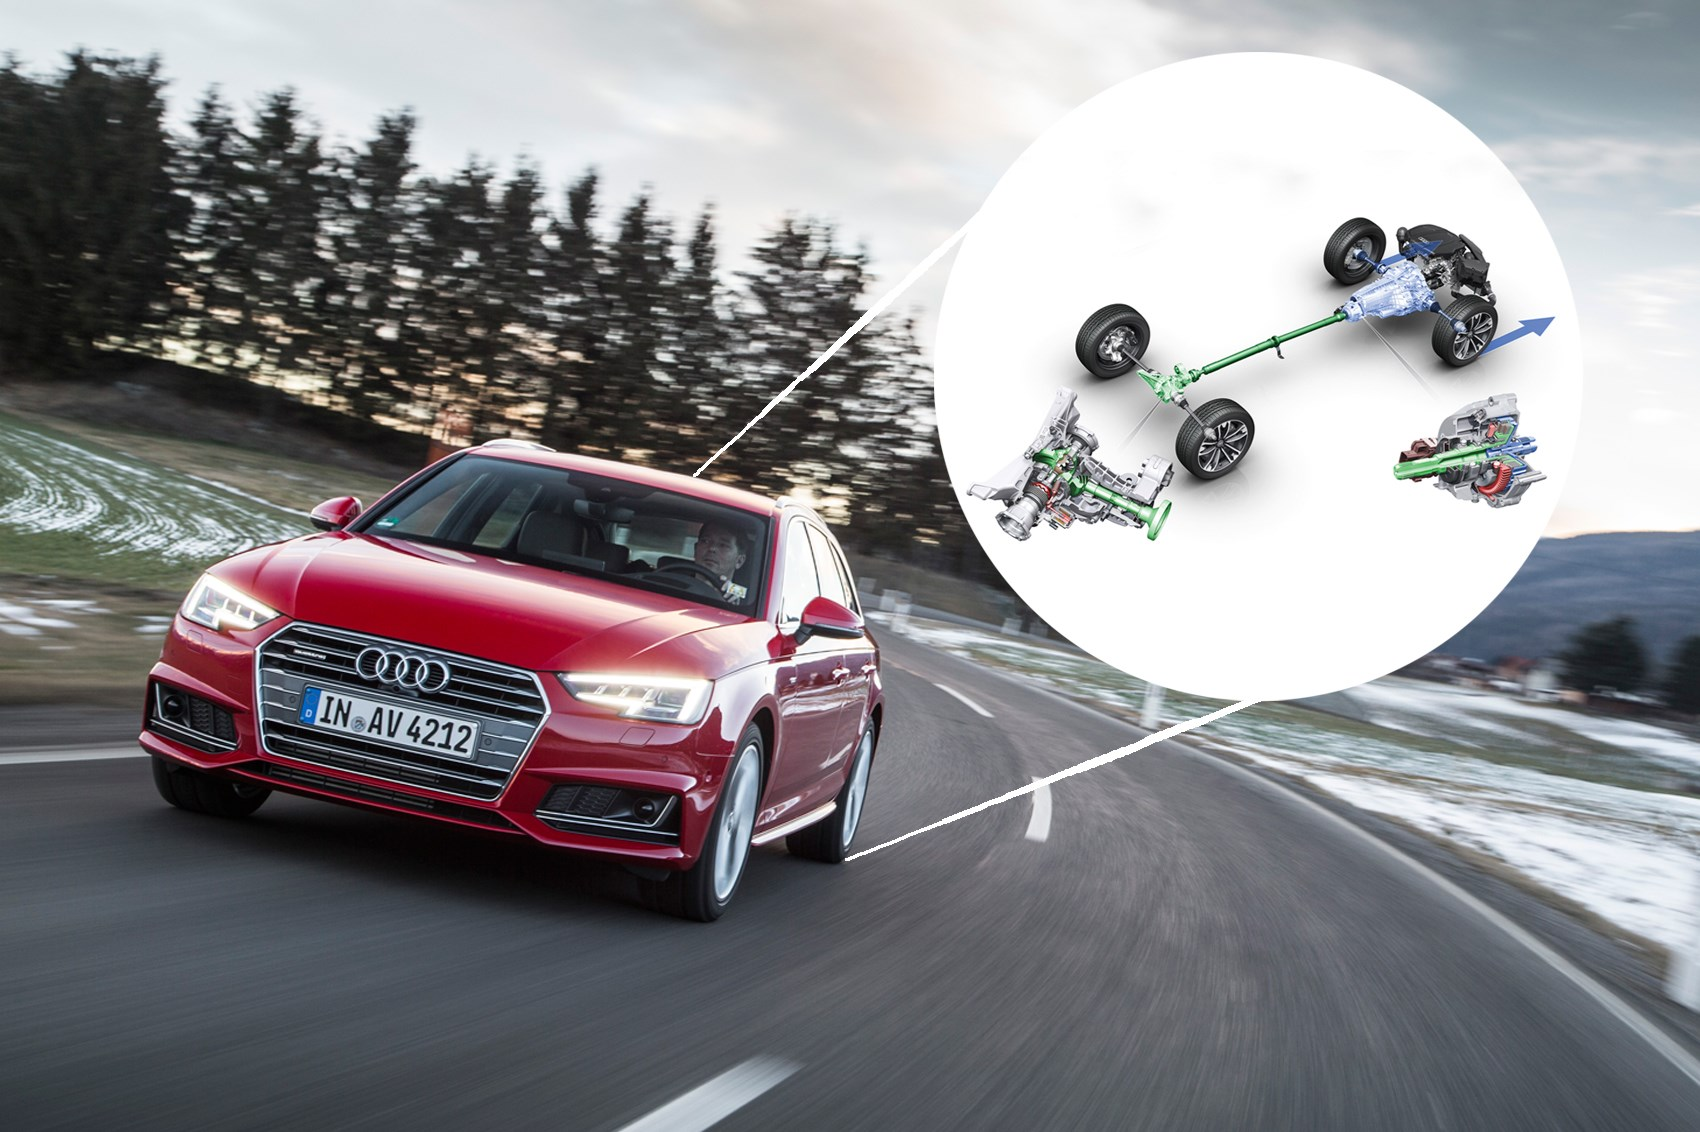 Review: Audi's new-for-2016 'Quattro with Ultra' all-wheel